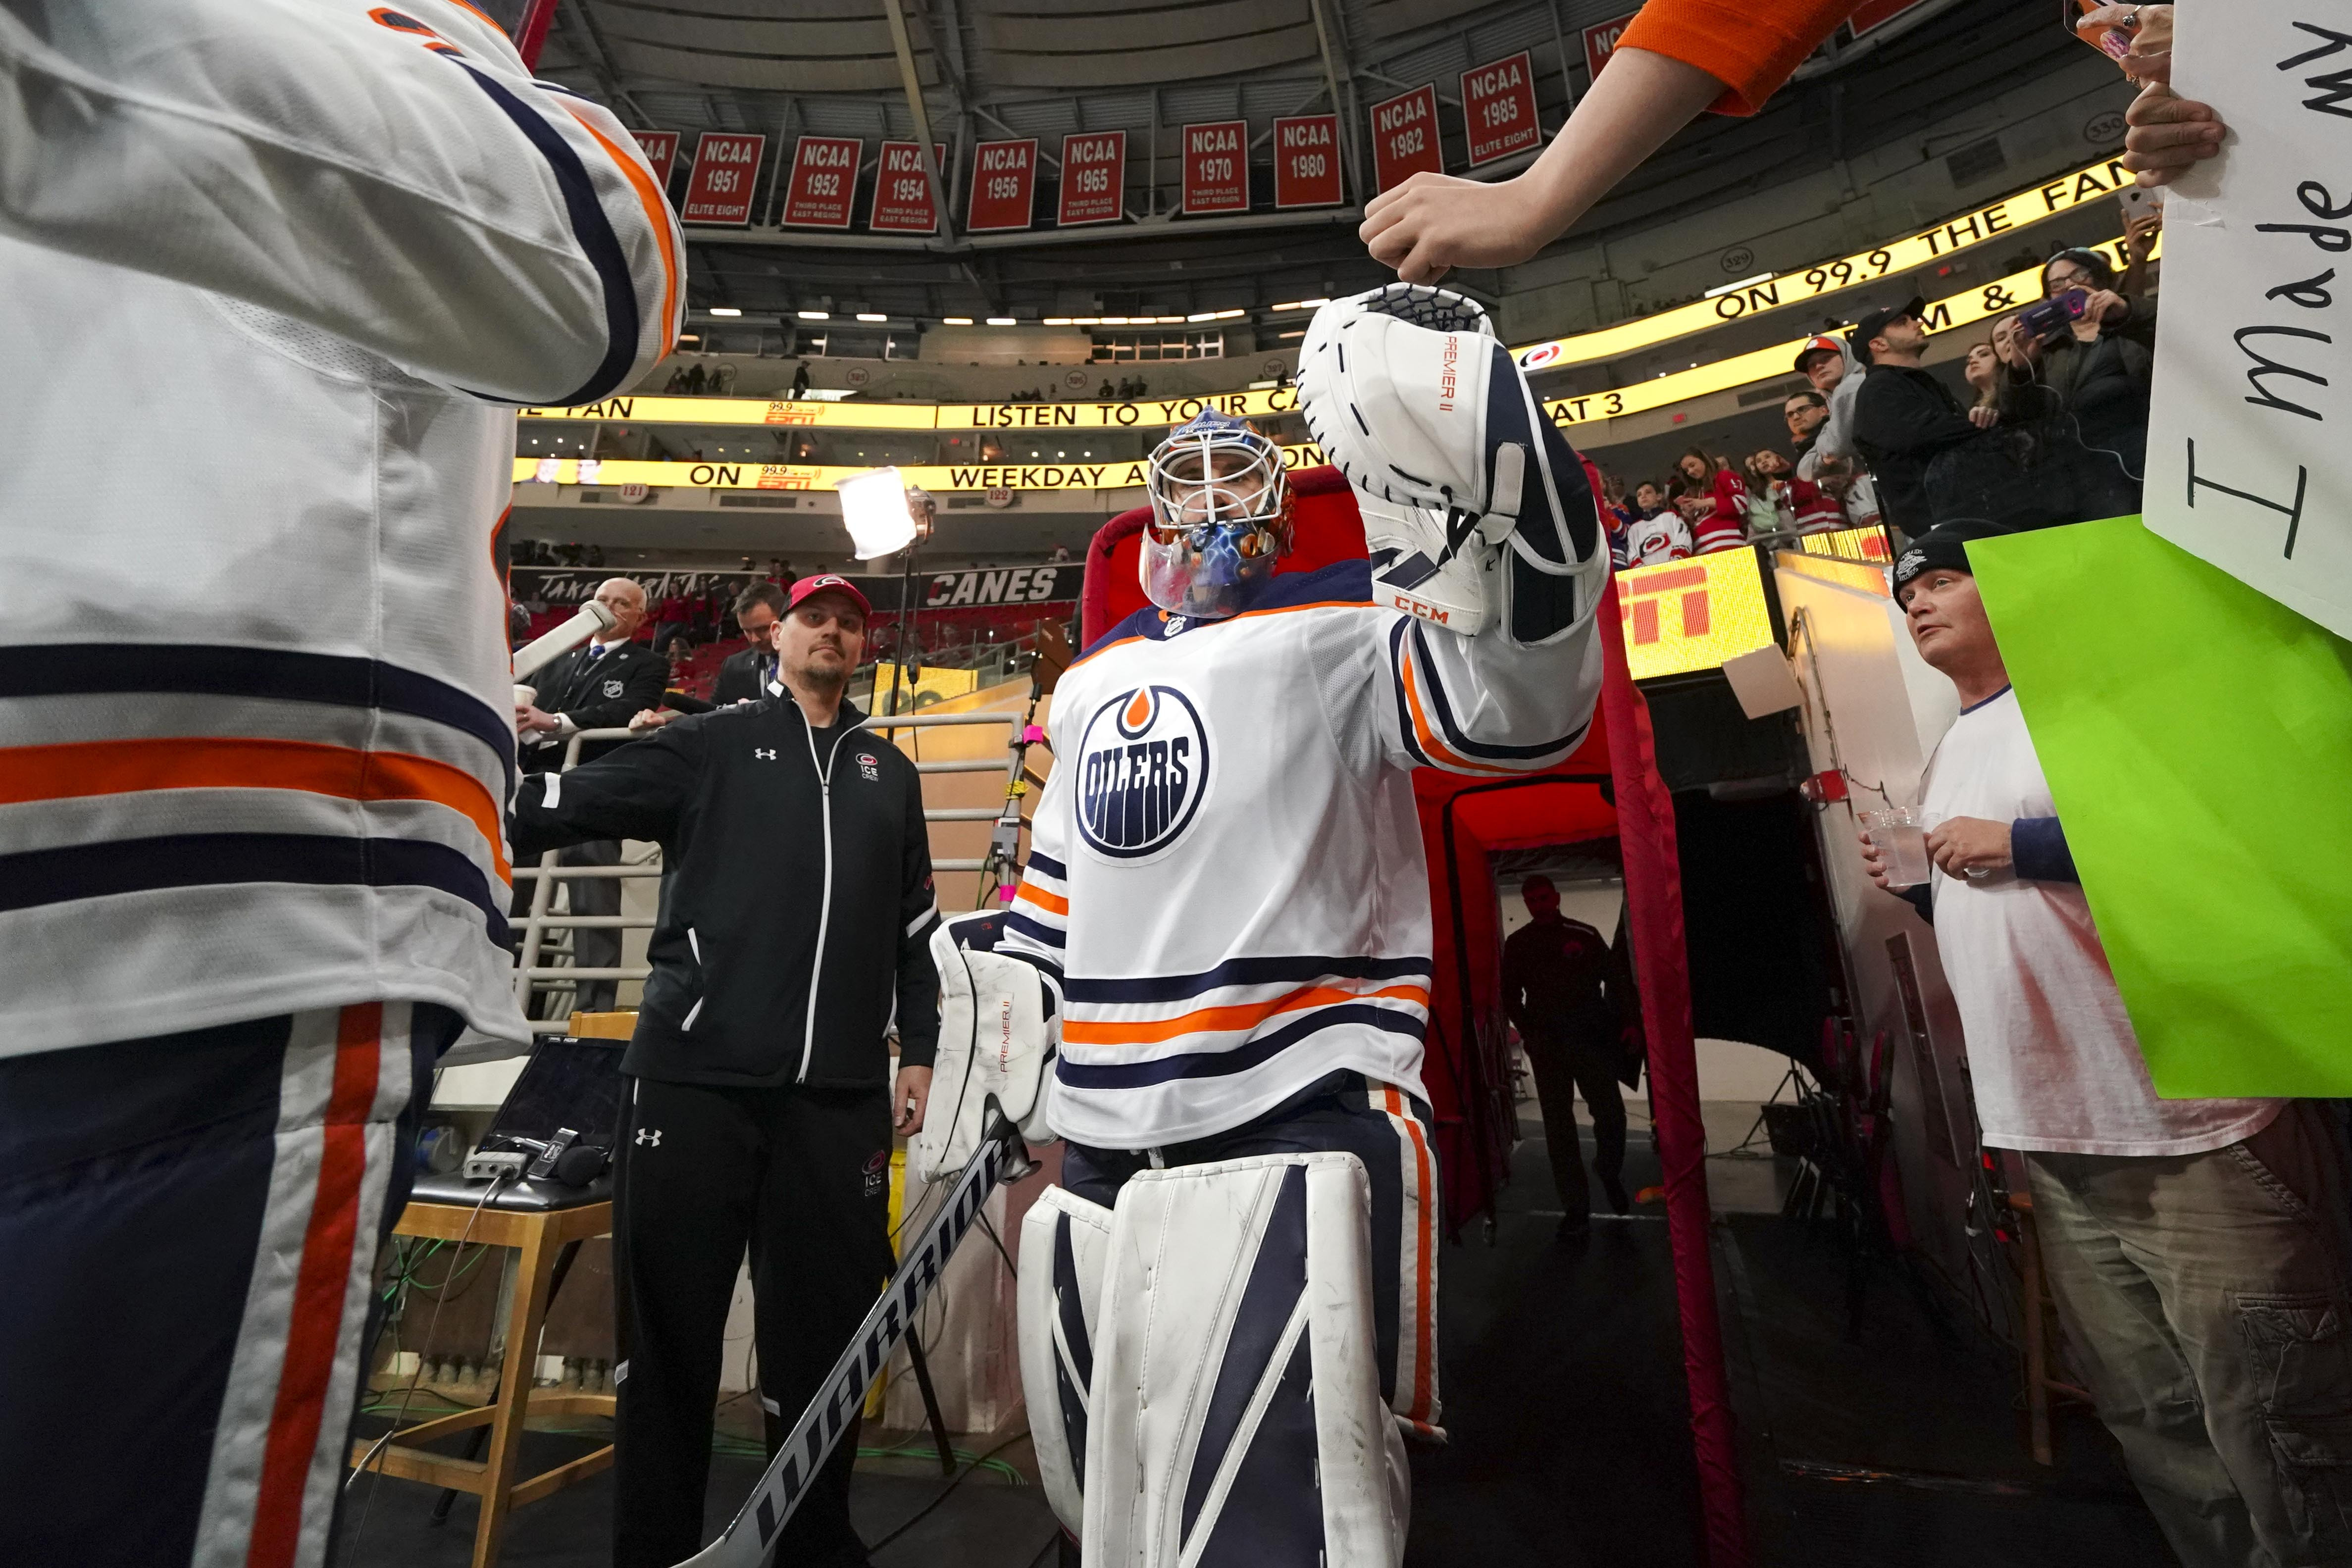 Feb 15, 2019; Raleigh, NC, USA; Edmonton Oilers goaltender Cam Talbot (33) walks past fans before a game against the Carolina Hurricanes at PNC Arena. The Hurricanes defeated the Oilers 3-1.